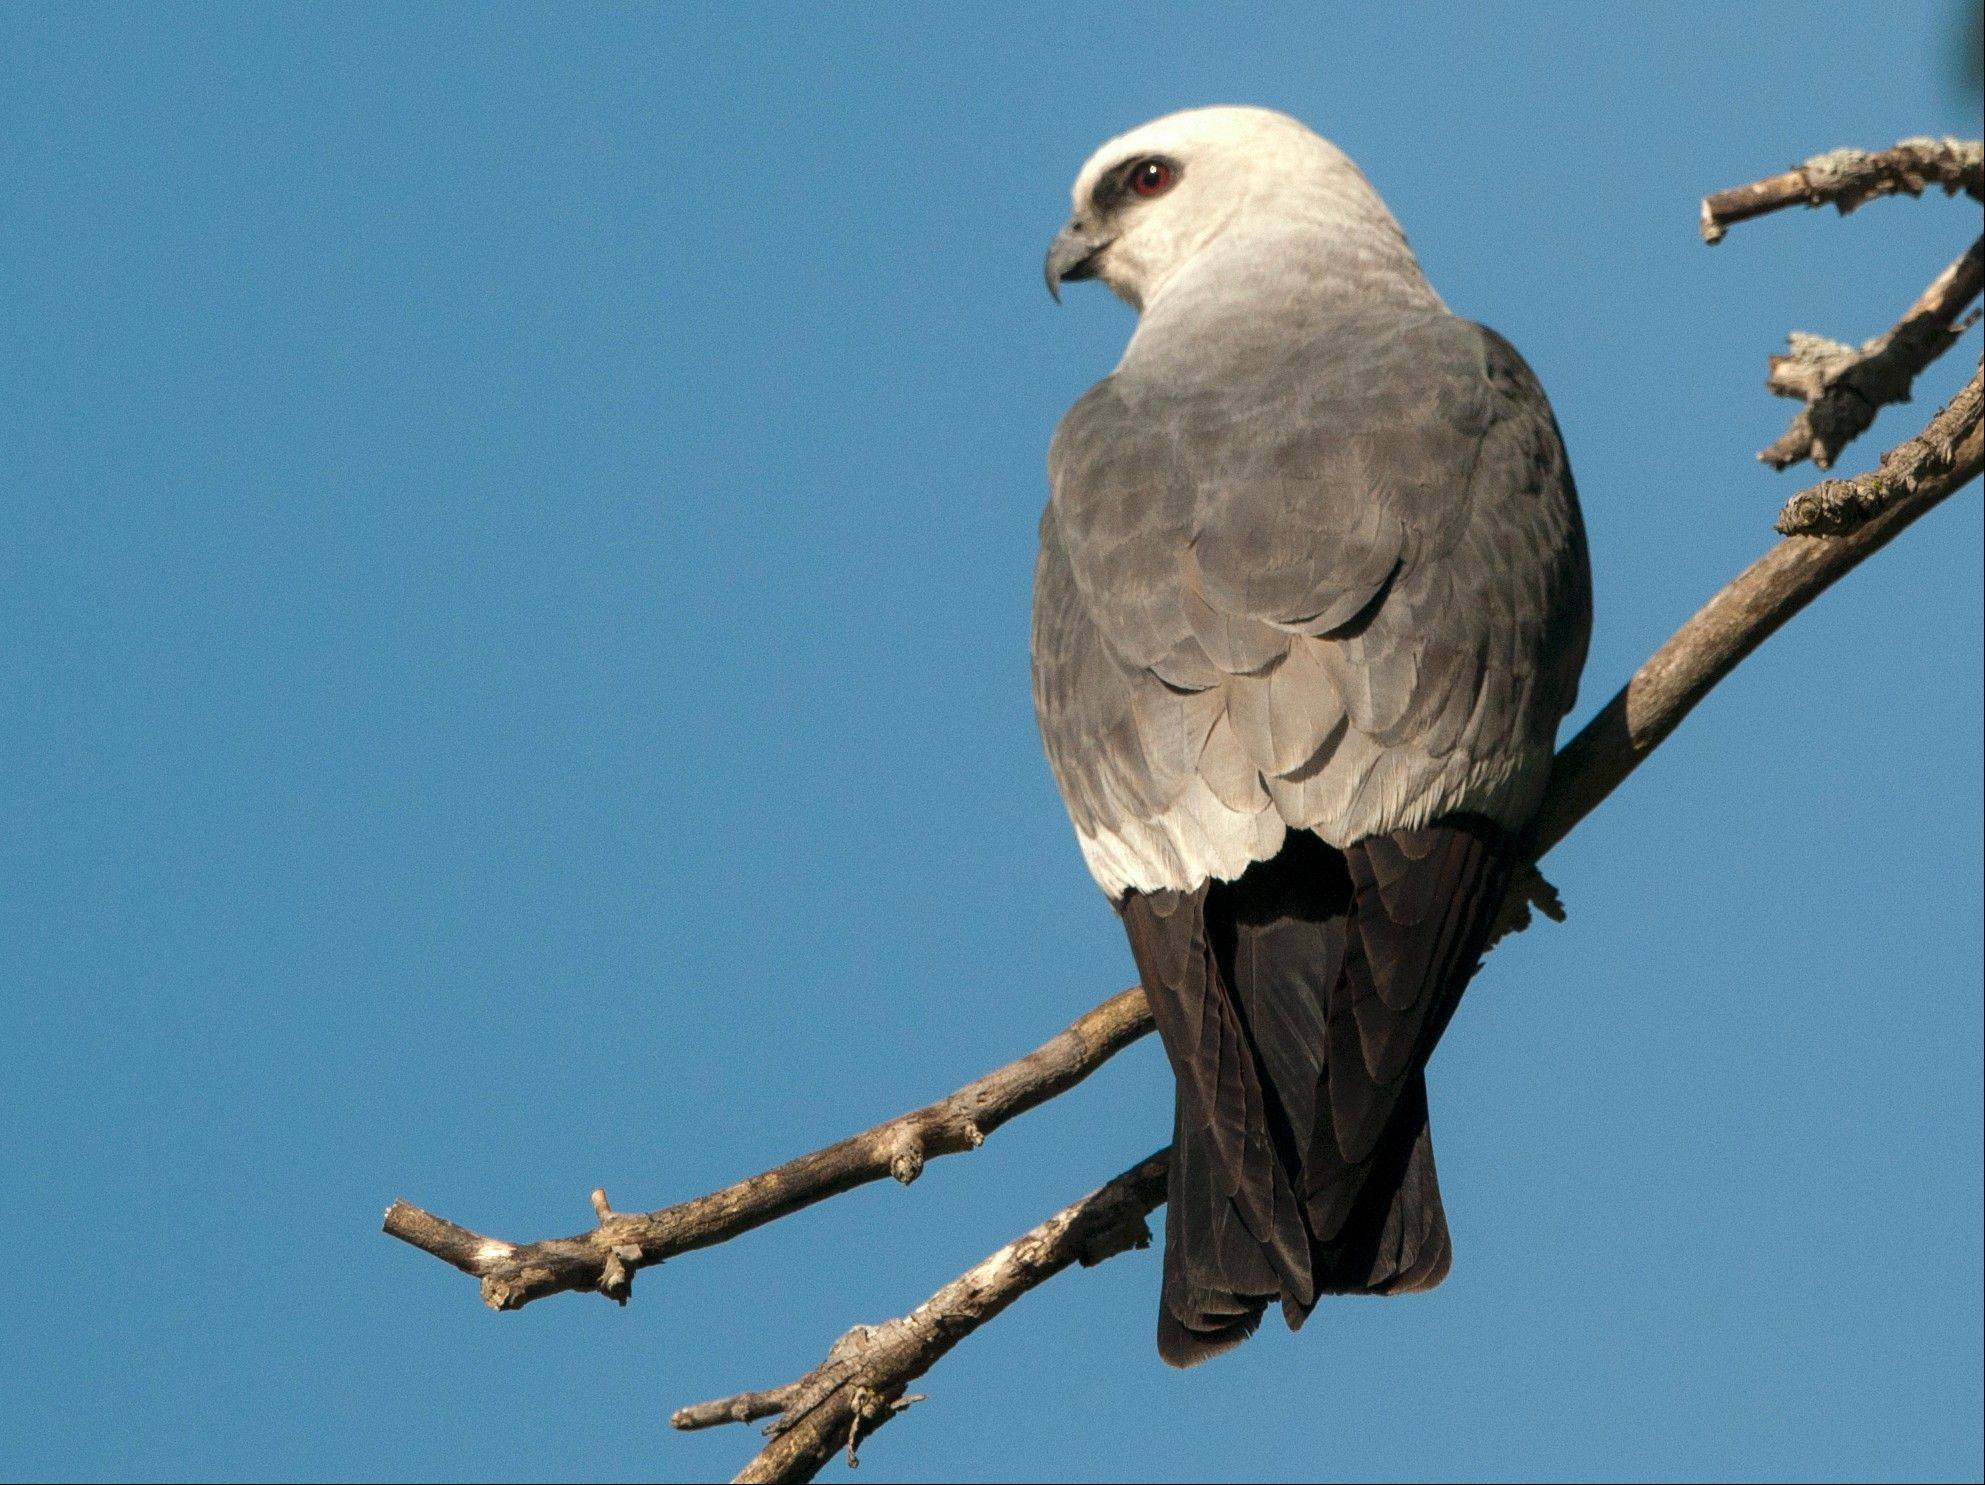 This Mississippi kite was photographed in the Rockford neighborhood where kites have returned for six consecutive years. Rockford is well north of the raptor's traditional breeding range.